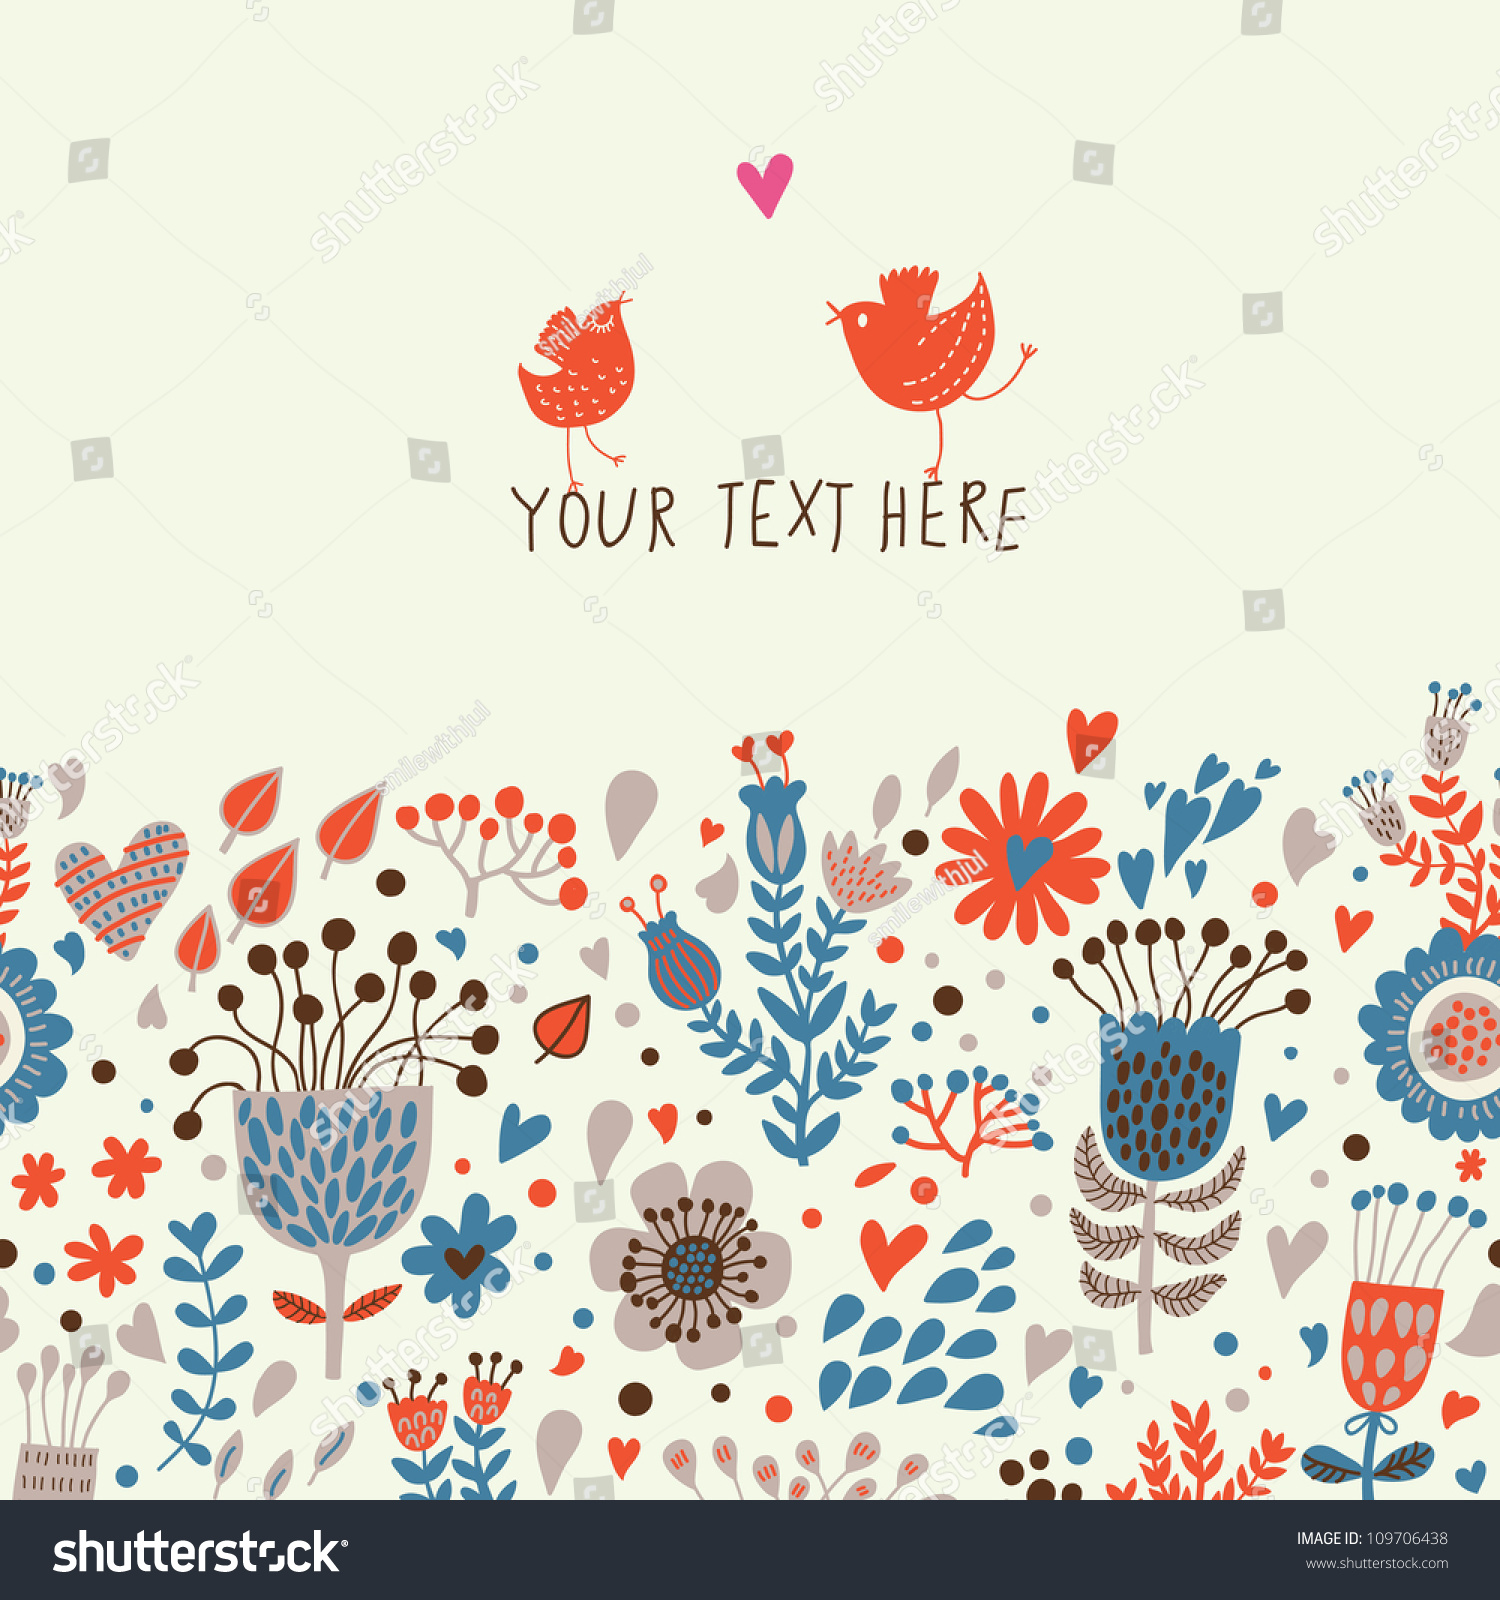 Decorative Element Border Flowers Birds Floral Stock Vector